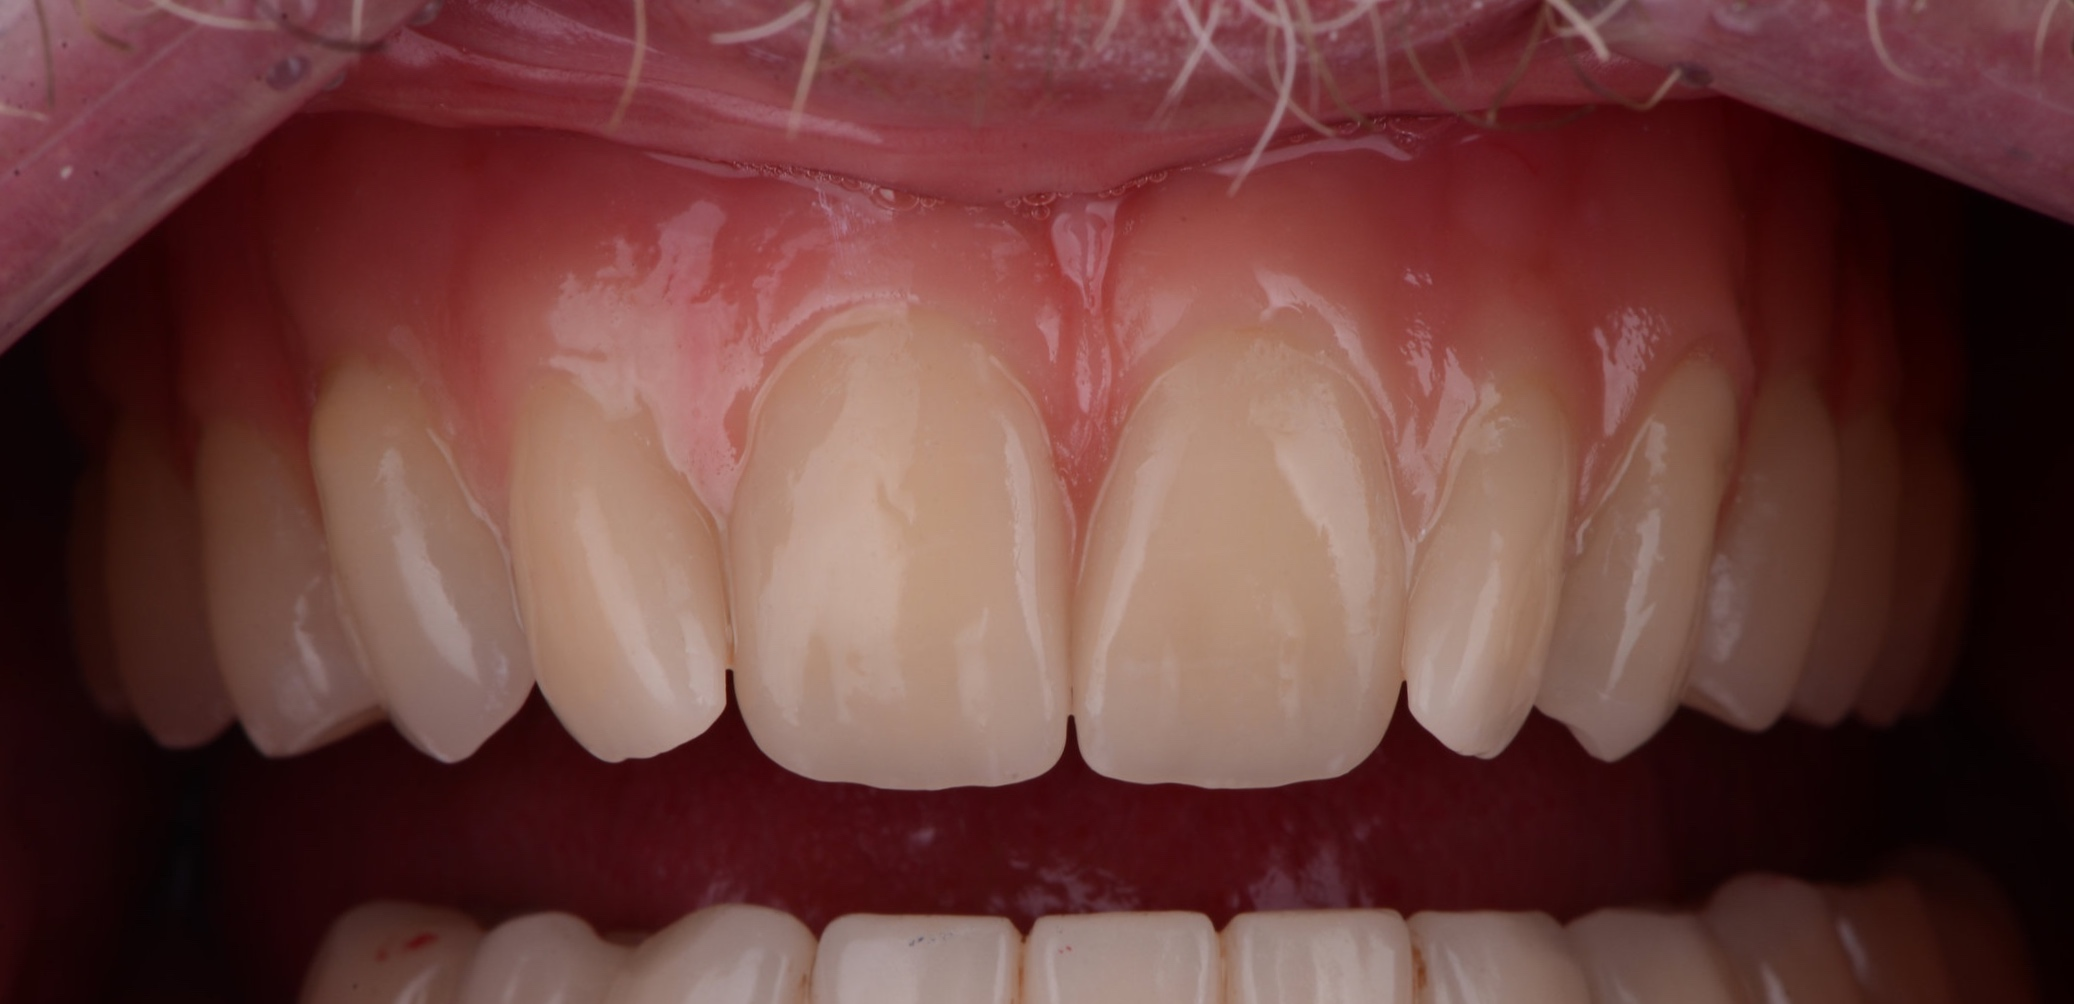 Intra Oral Photo From the Above Patient